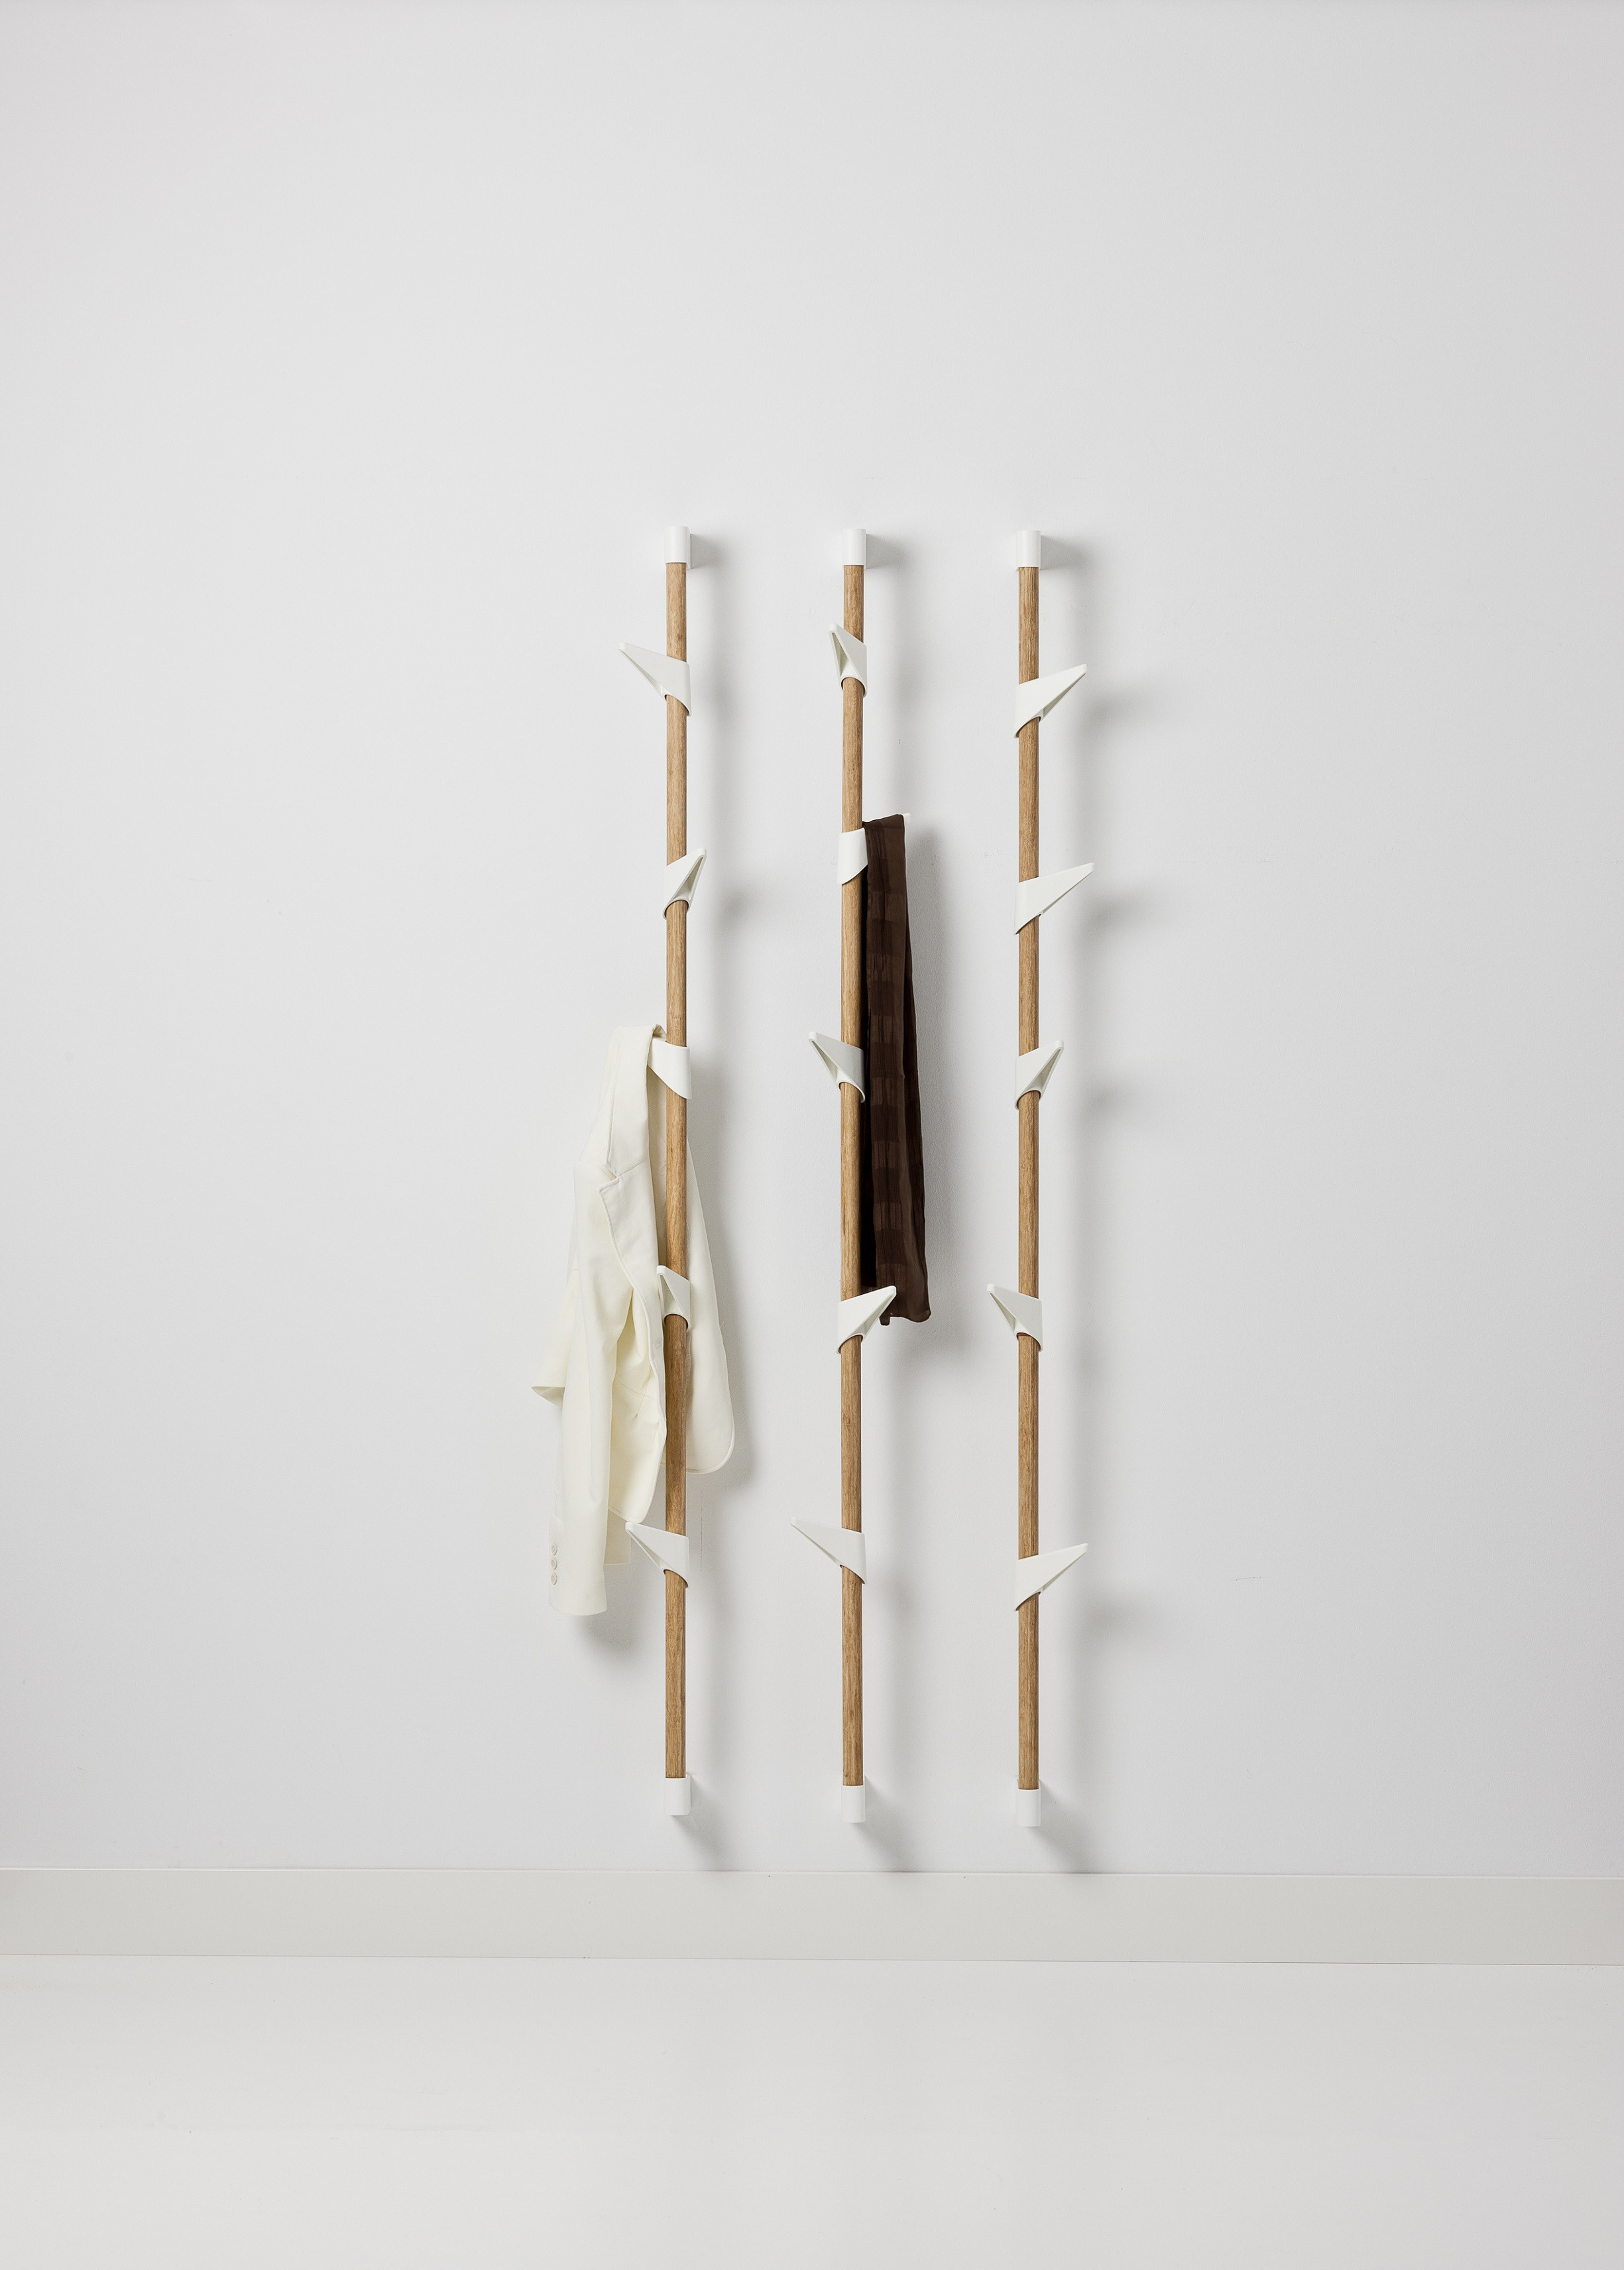 order bamboo wall coat rack  cascando from shophollandcom -  designer wall coat rack bamboo wall